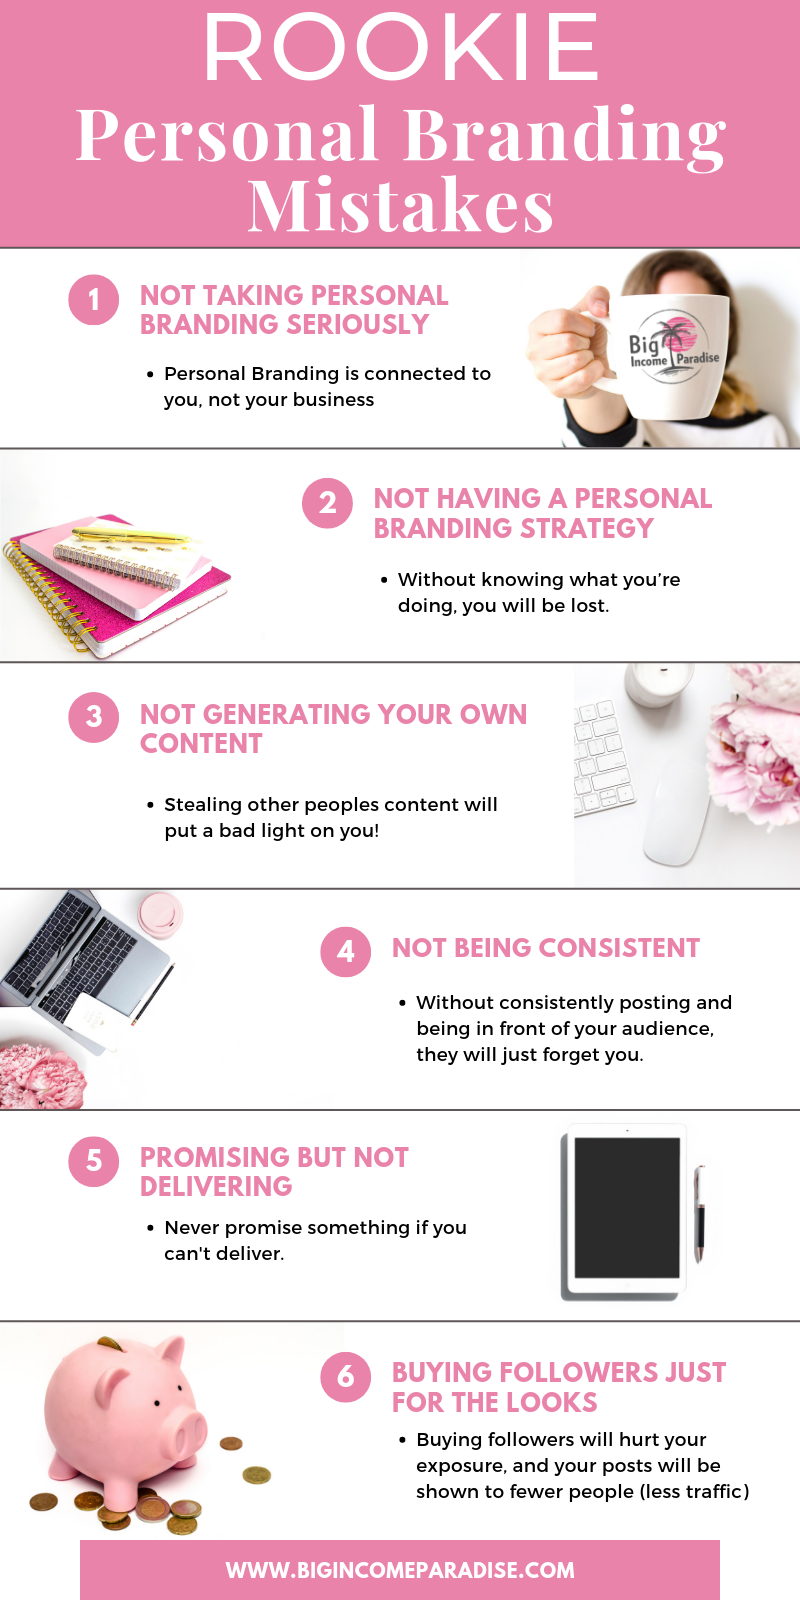 Personal Branding for entrepreneurs is super important. It's one of the keys to your online success. So if you do these Personal Branding mistakes, you can actually hurt your business and your reputation. To avoid destroying your business and brand, check out which Personal Branding mistakes you should avoid at all cost. #bigincomeparadise  #personalbranding #branding #womaninbusiness #brandyourbusiness #brandingtips